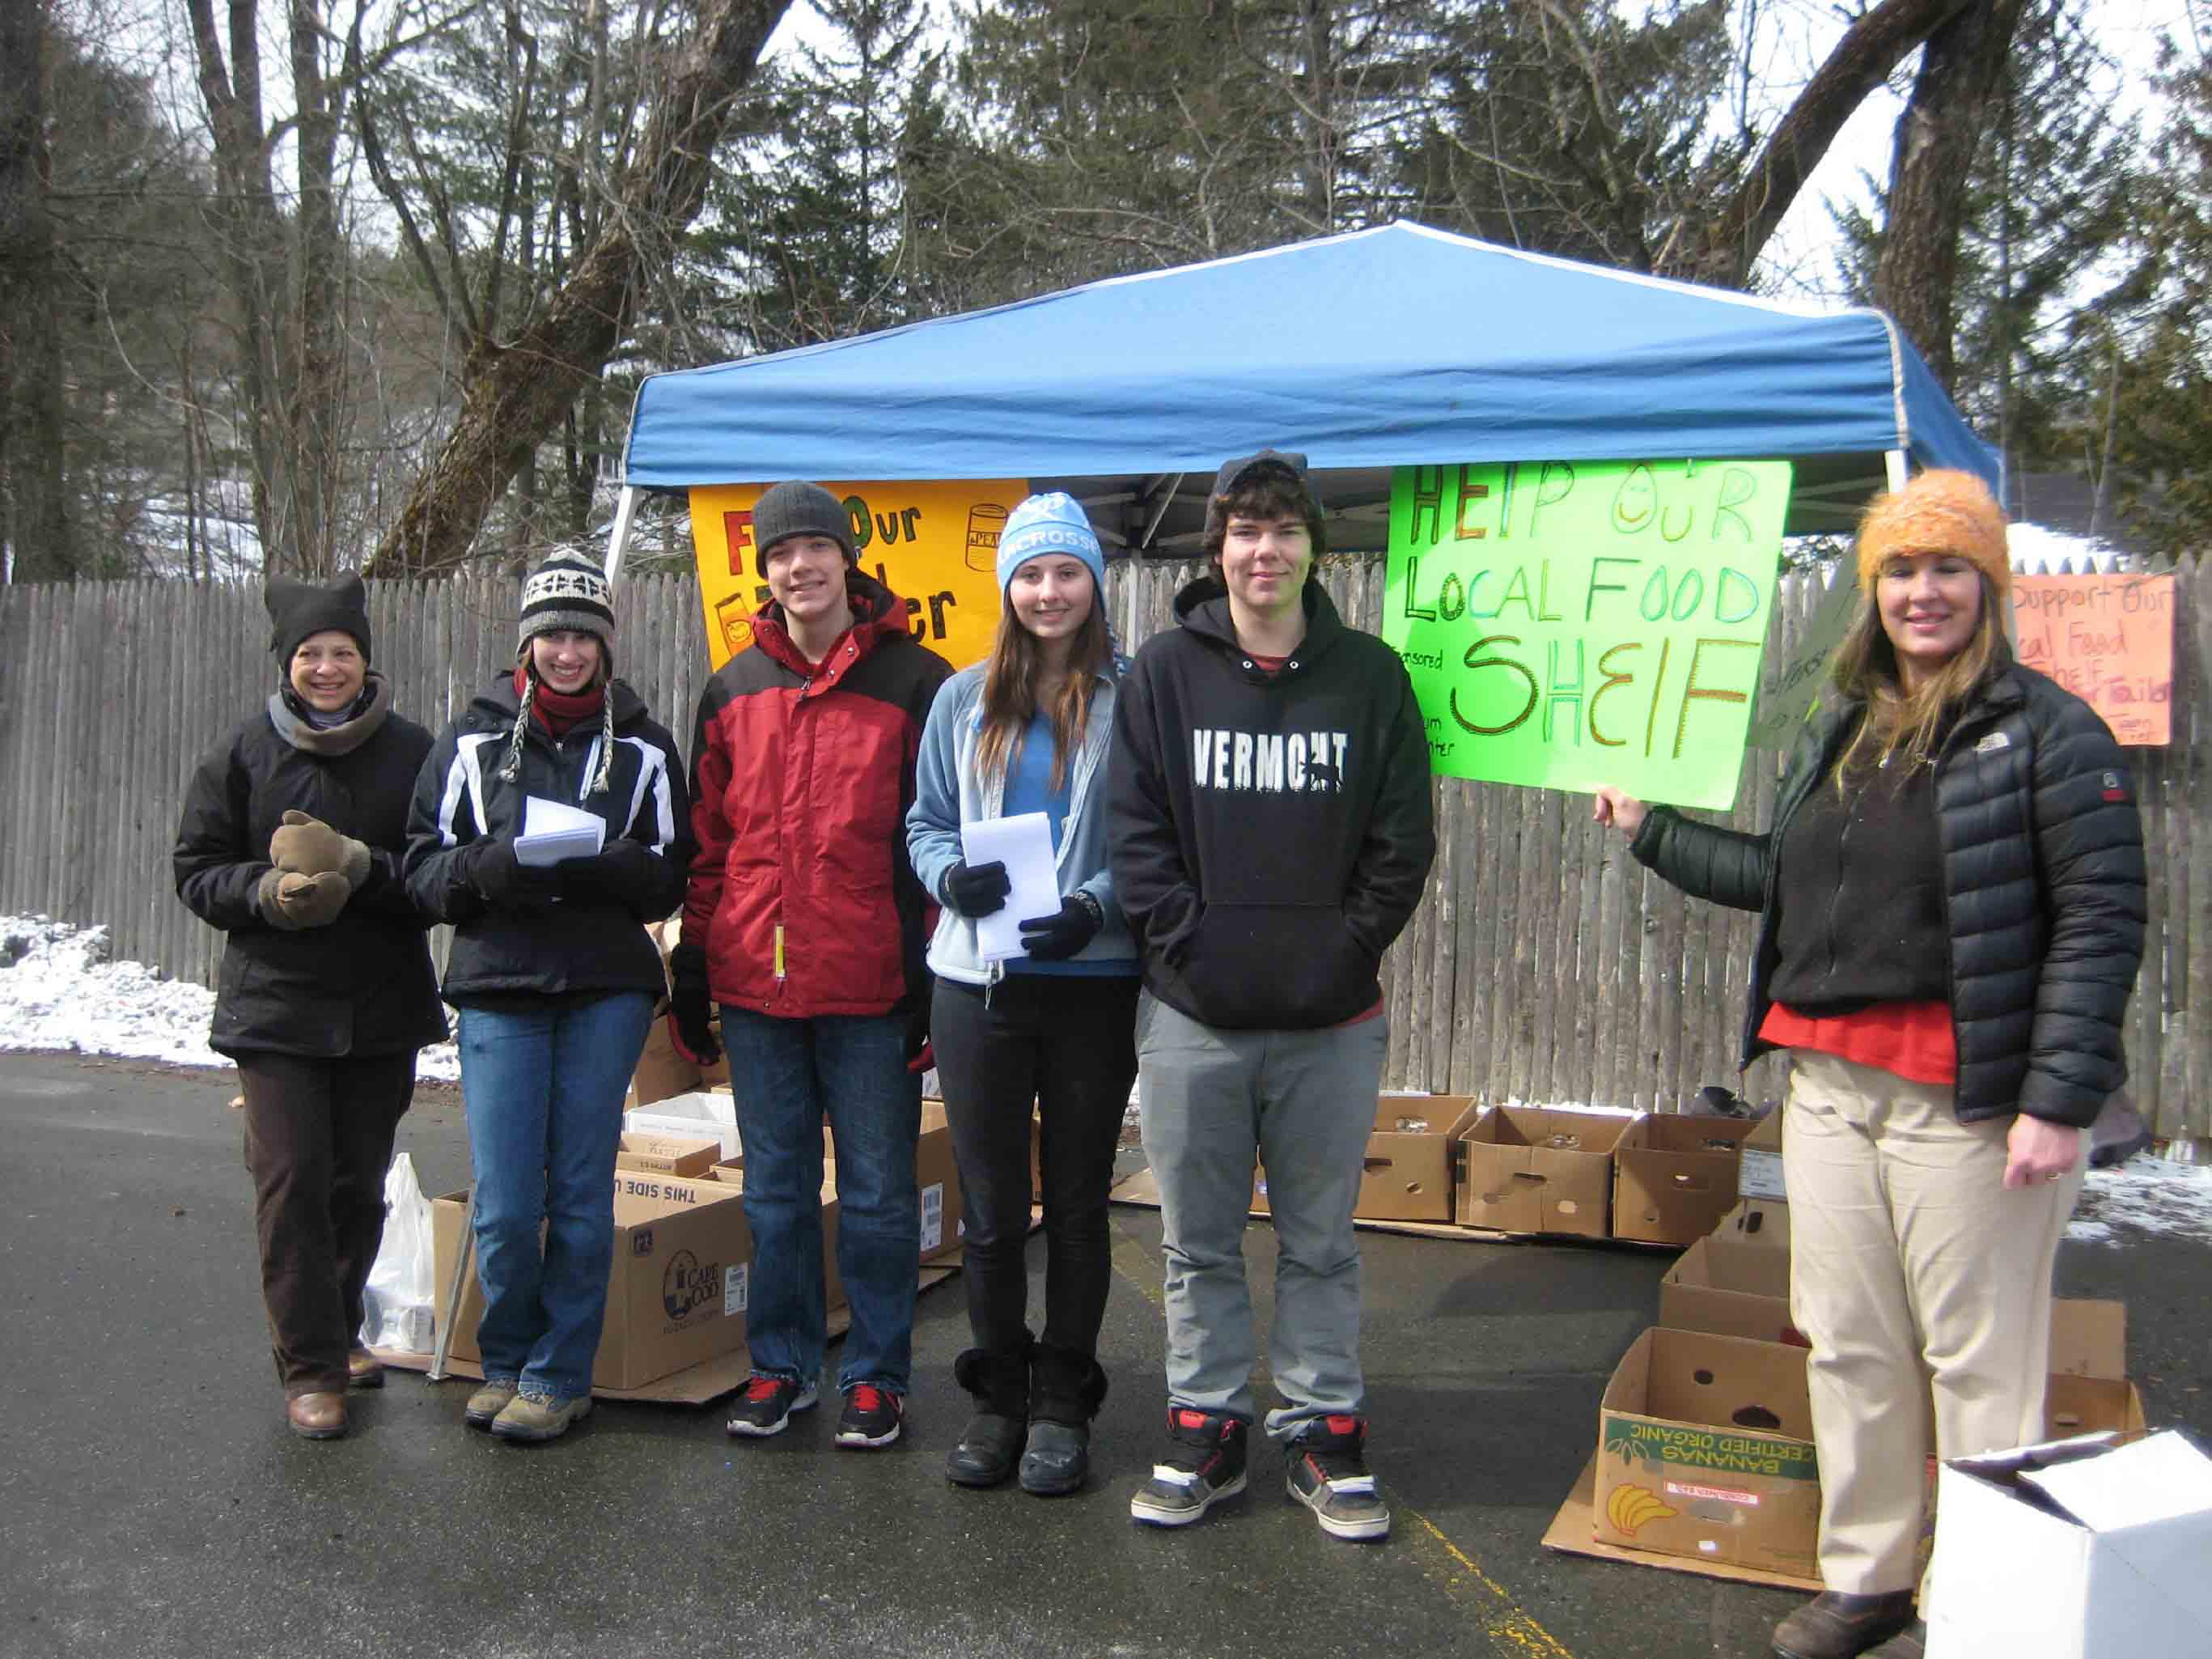 left to right: Joan Williamson, Treasurer WCFS; students Carolyn Hopkins, Kent Dalton, Megan Dalton, Evan Sawyer, and Joni Kennedy, Adult Advisor, collect food at mac's Market in Woodstock on March 16, 2013.